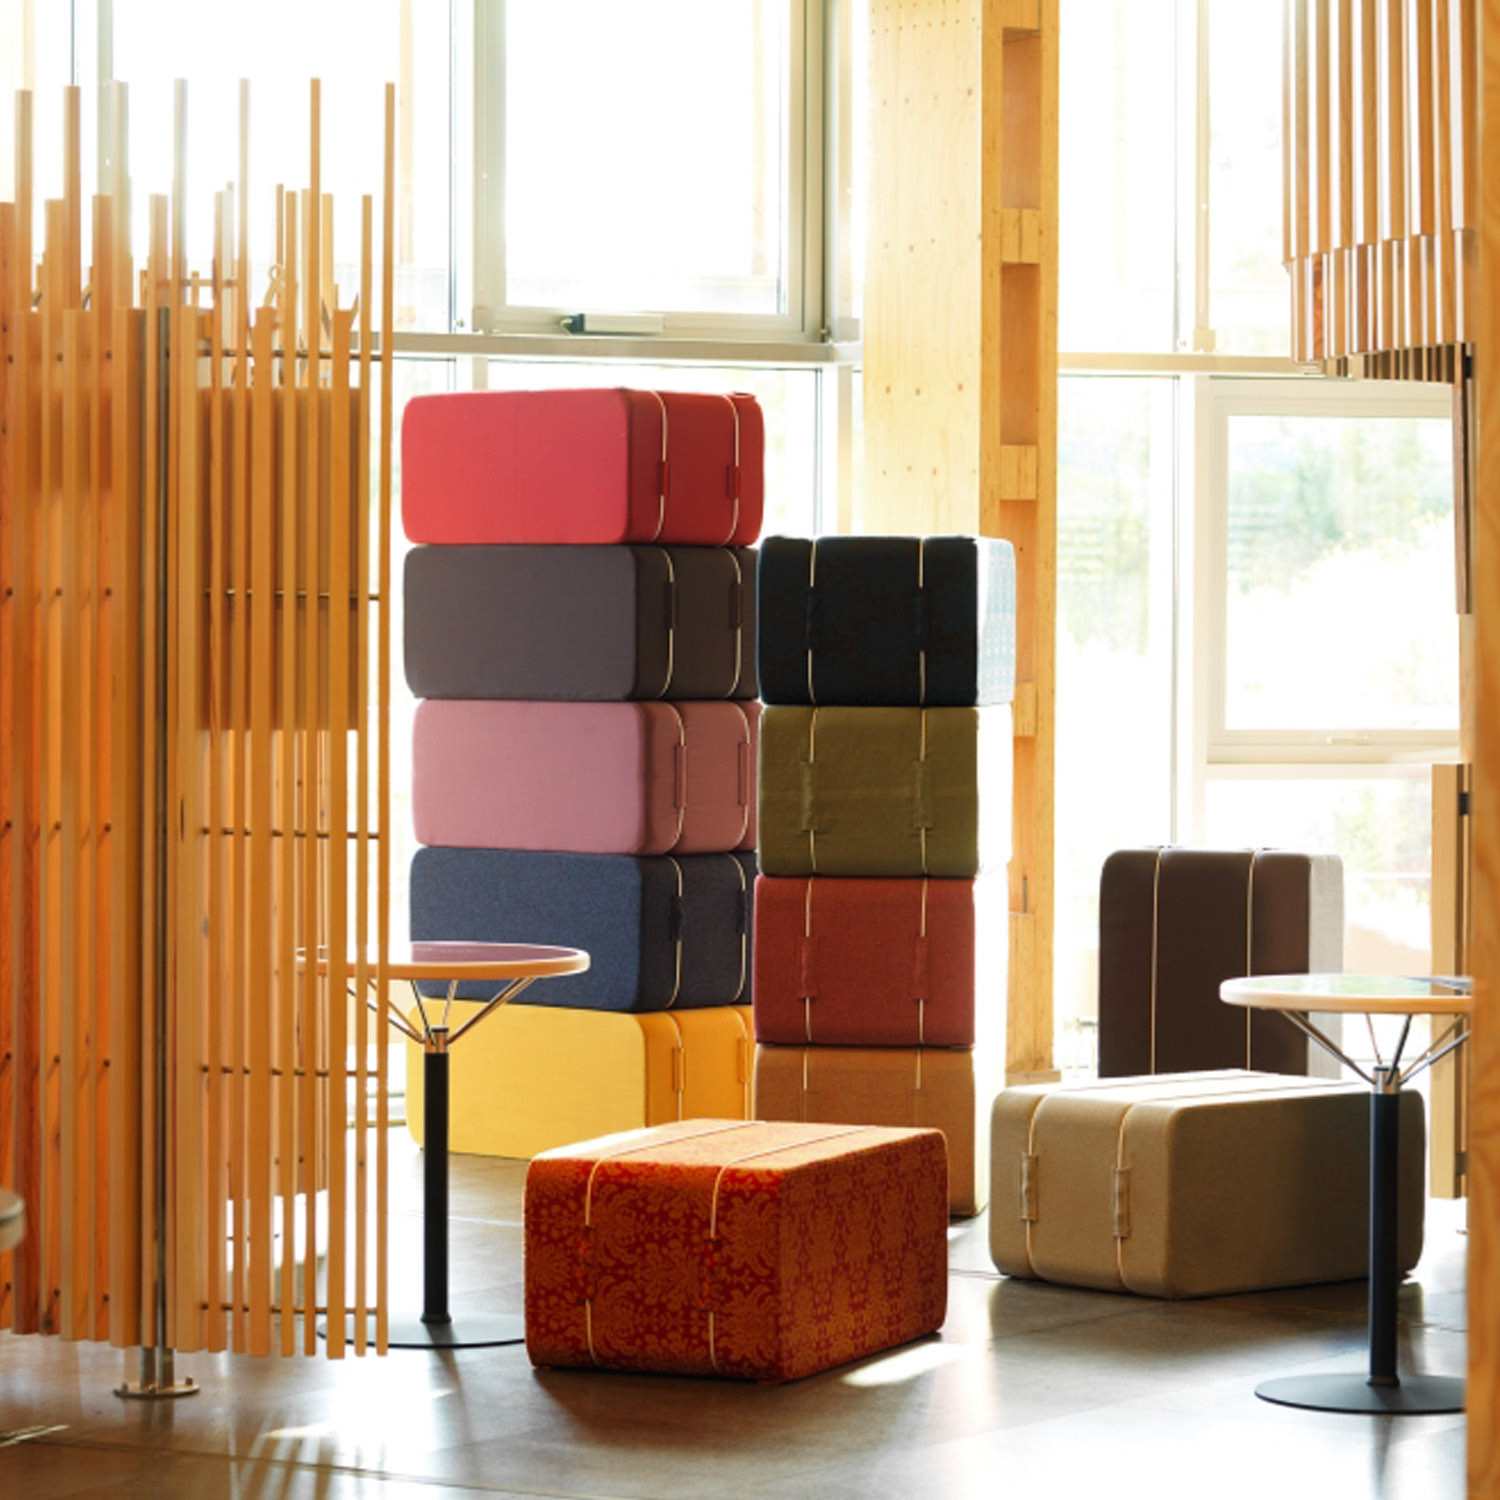 PM A11 Stacked Seating Stools